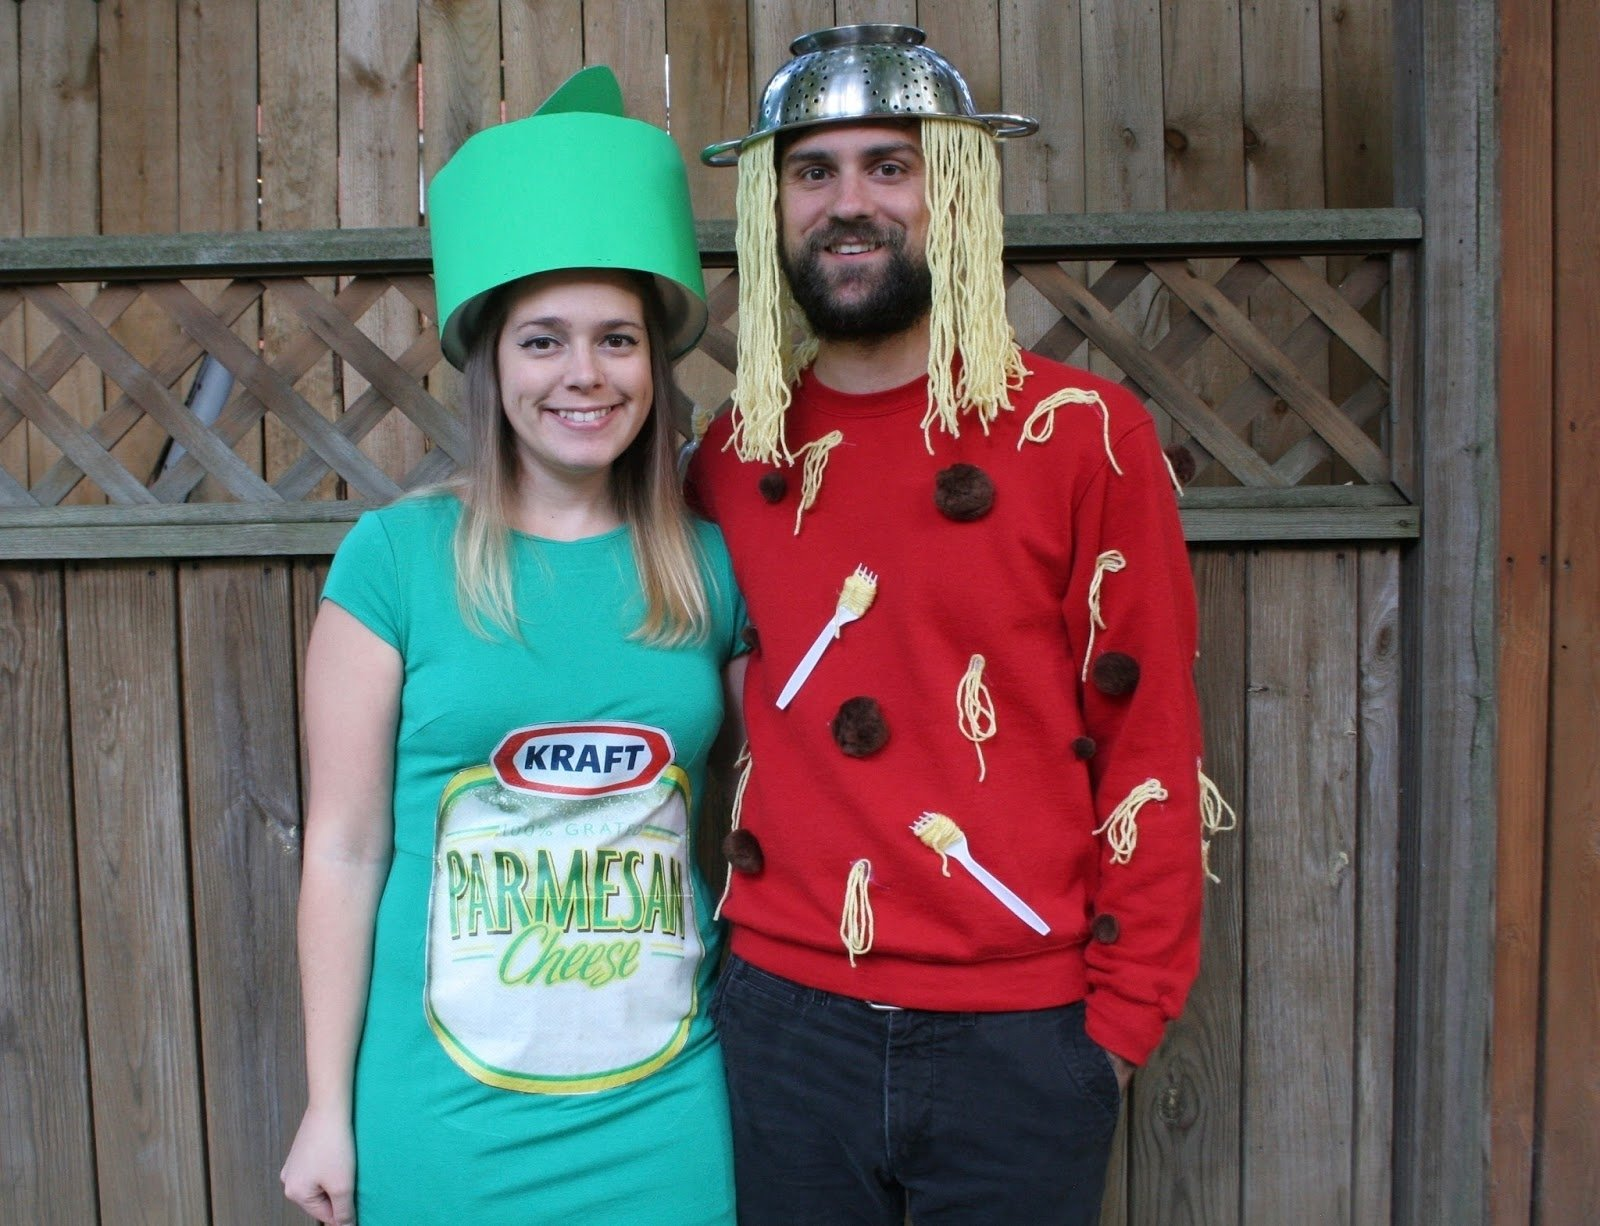 10 Famous Creative Halloween Costume Ideas For Couples our halloween costumes spaghetti parmesan cheese the surznick 7